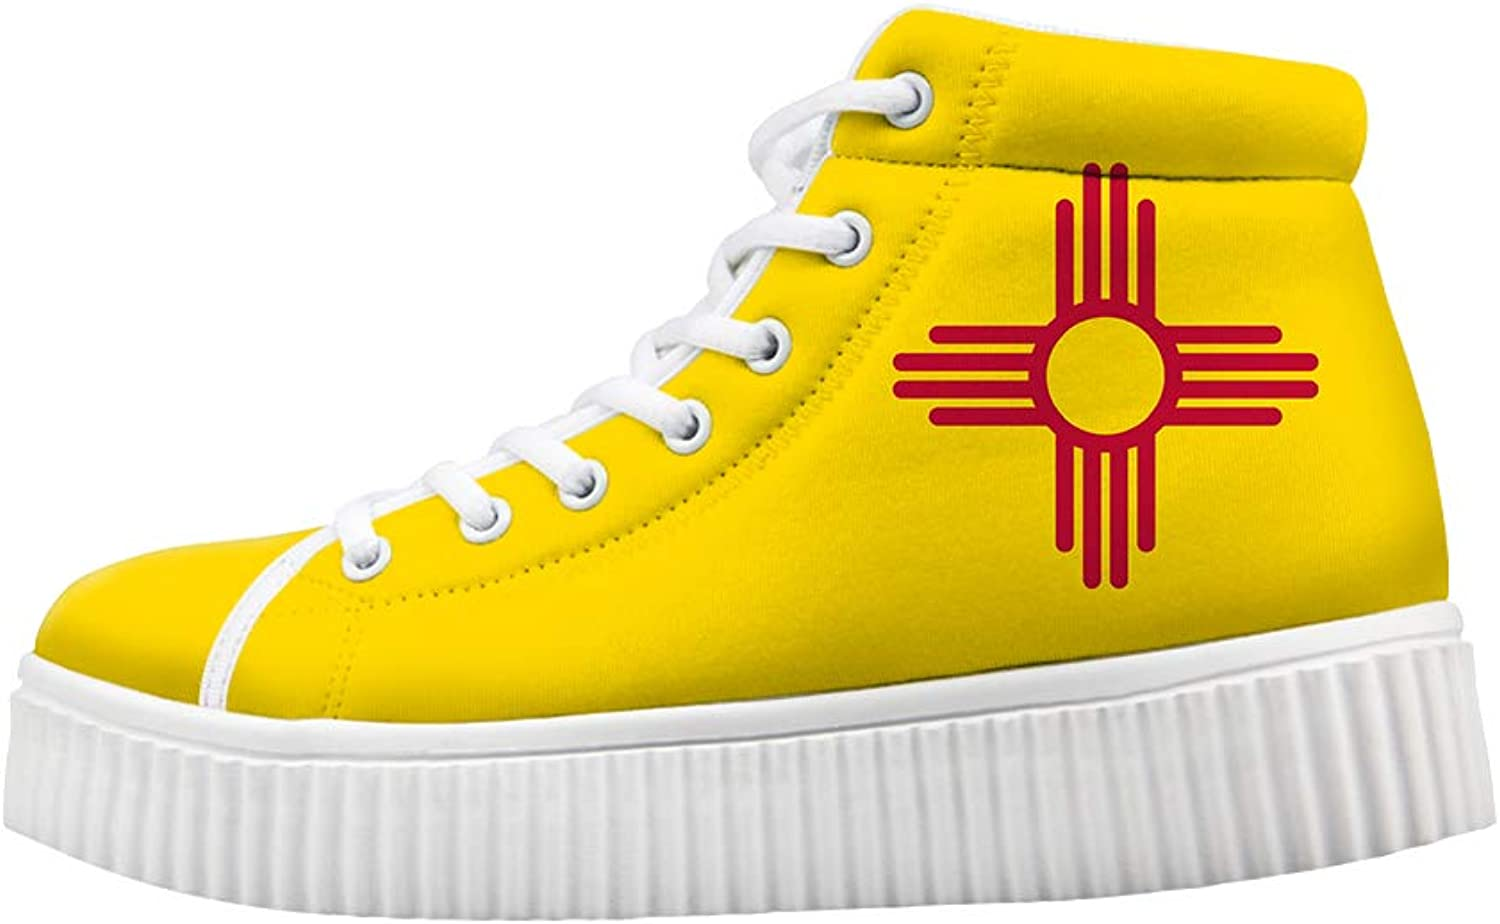 Owaheson Platform Lace up Sneaker Casual Chunky Walking shoes Women New Mexico Flag